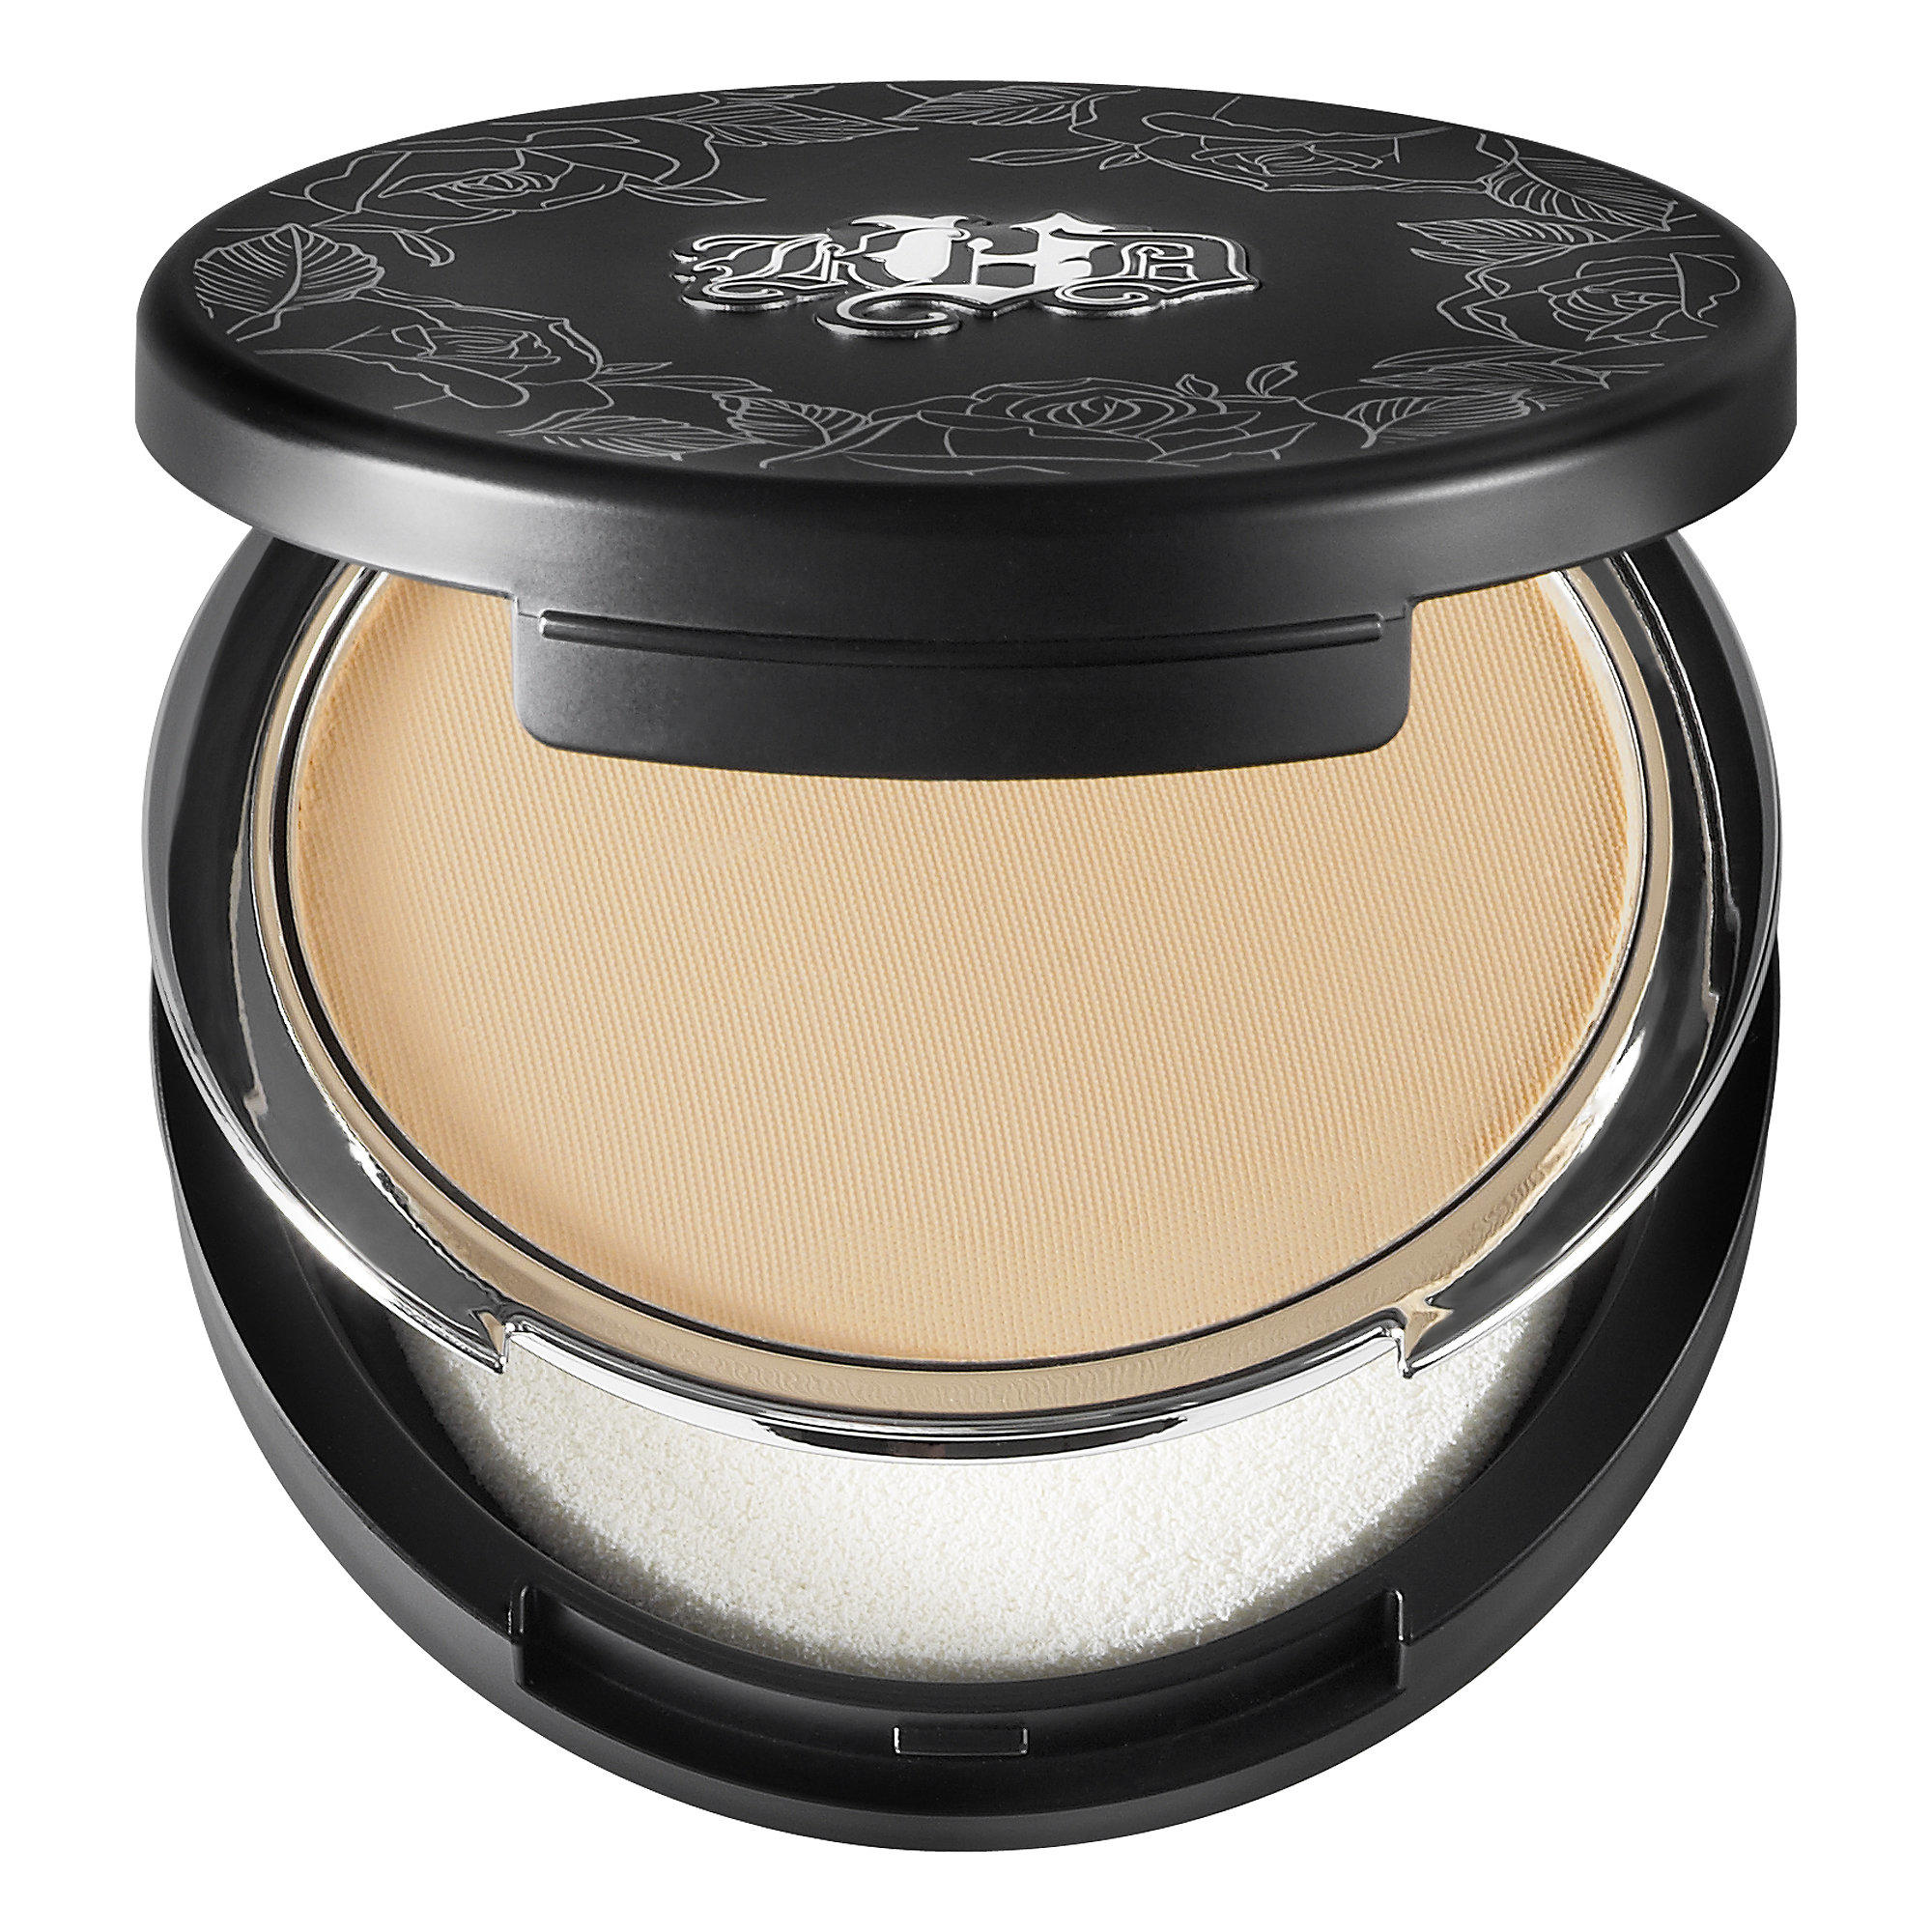 Kat Von D Lock-It Tattoo Powder Foundation Medium 53